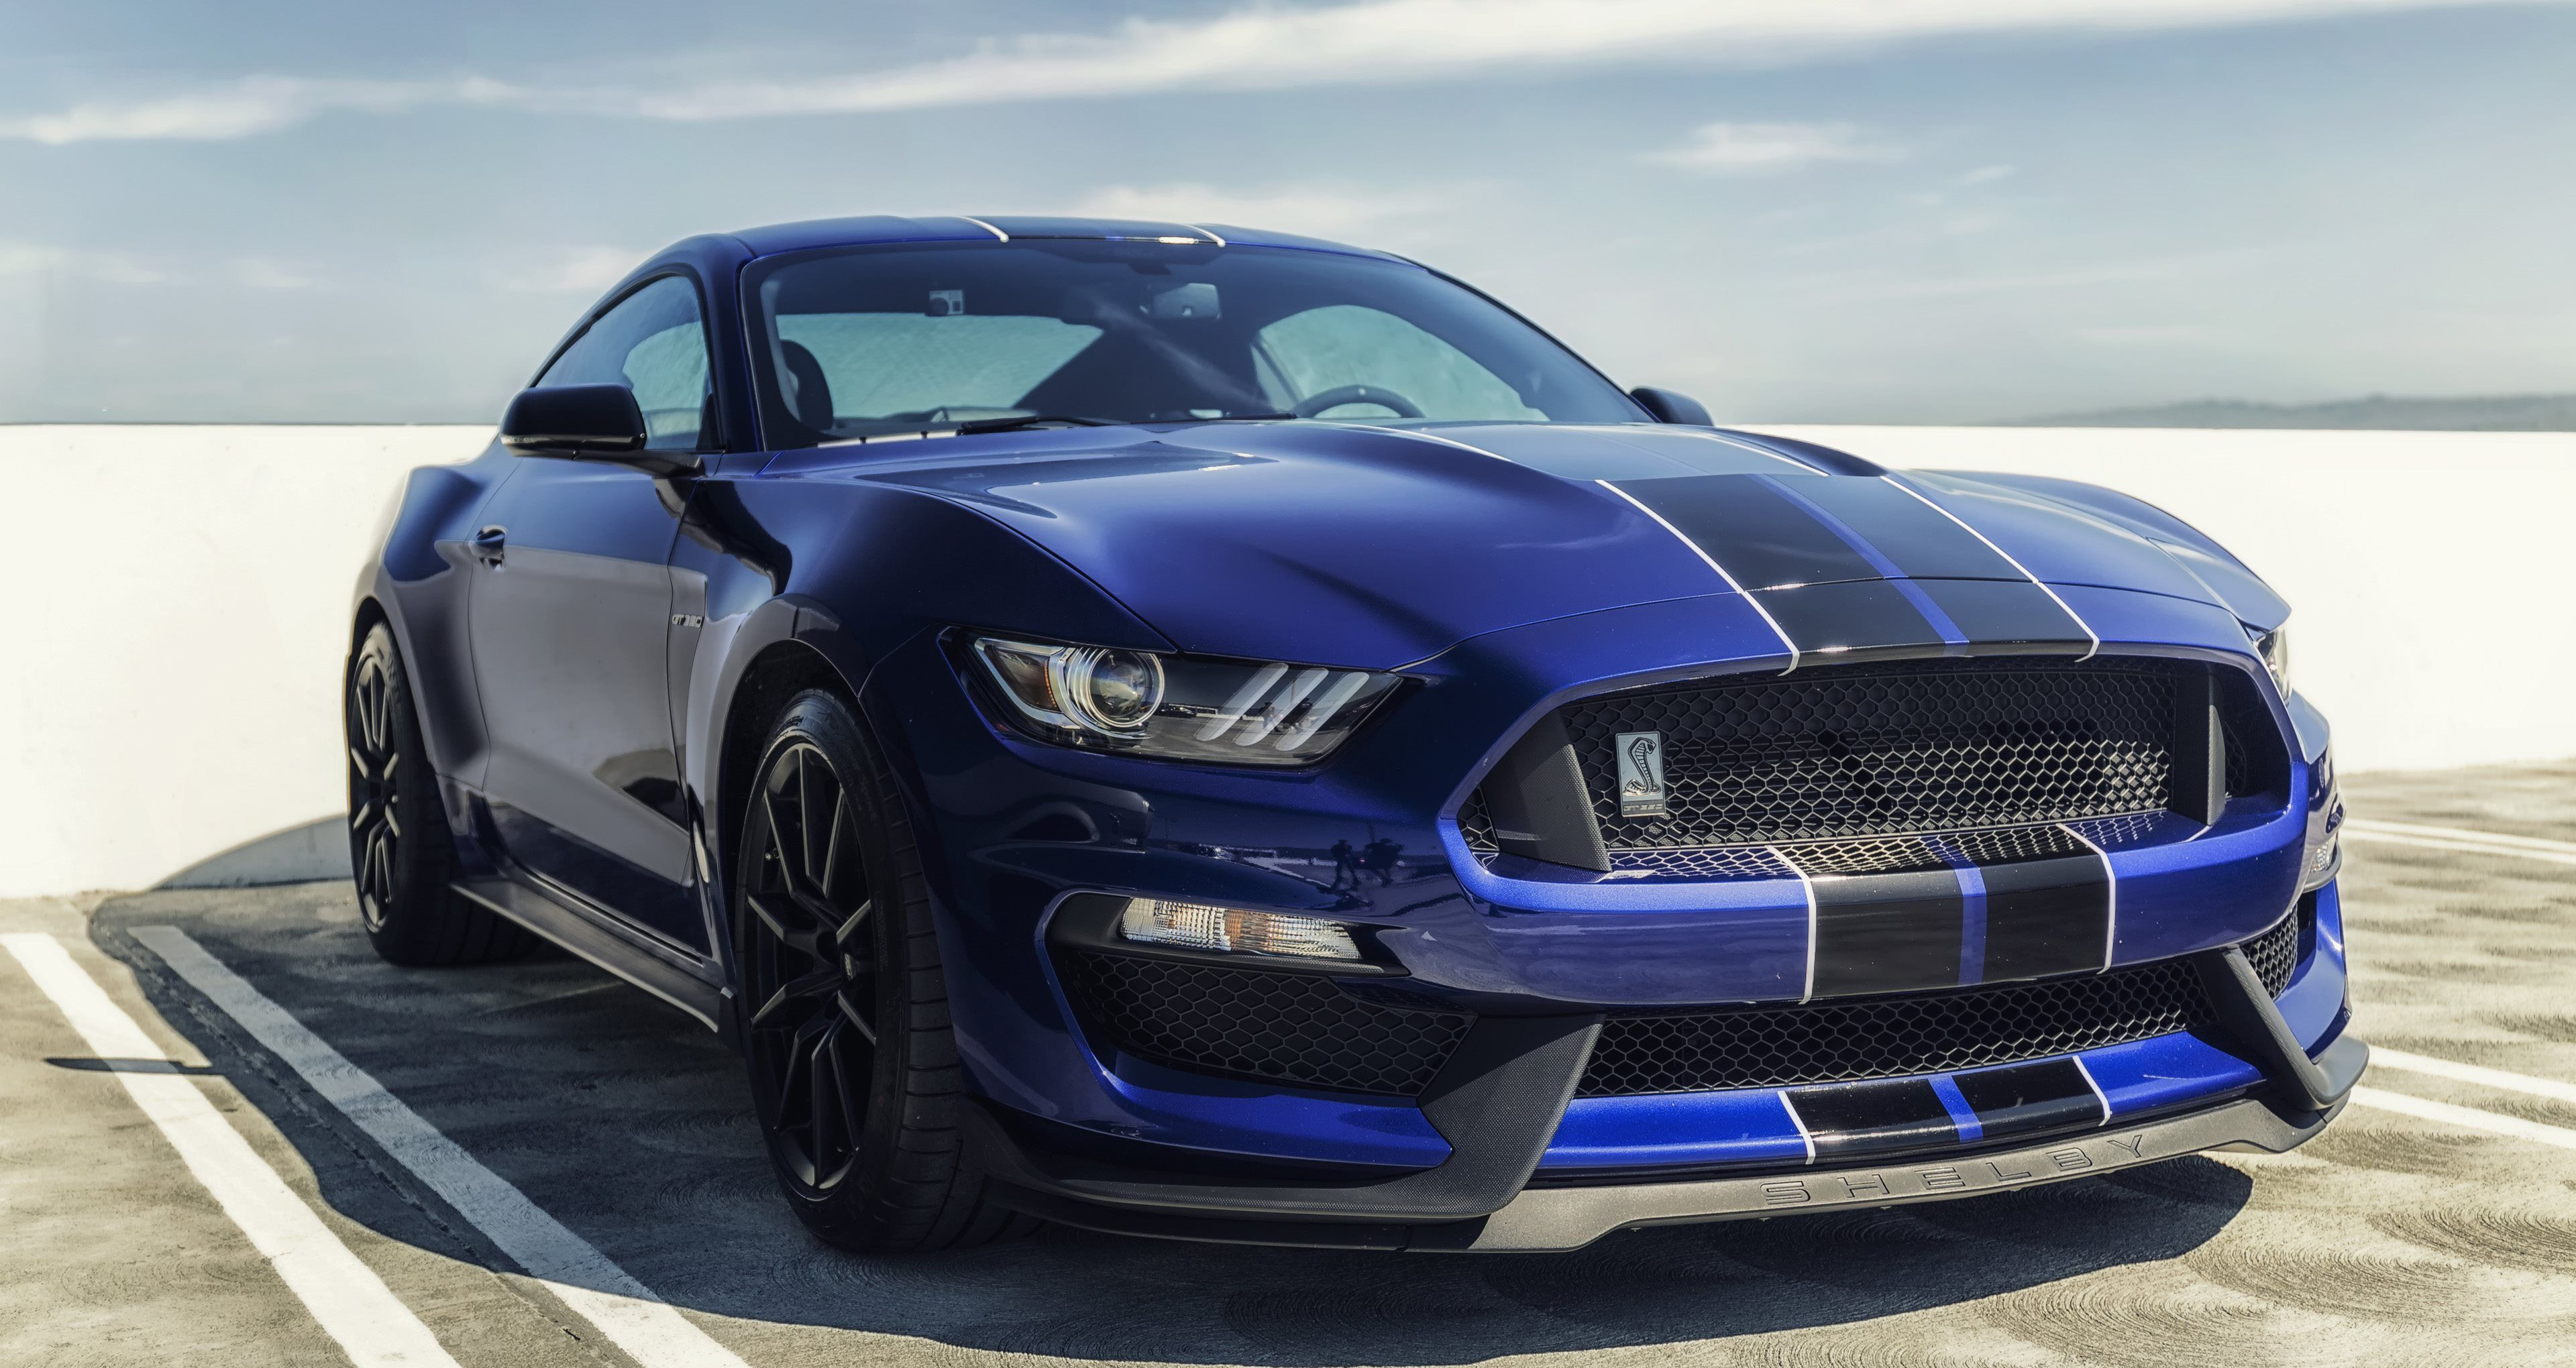 3840x2040 - Shelby Mustang GT 350 Wallpapers 9